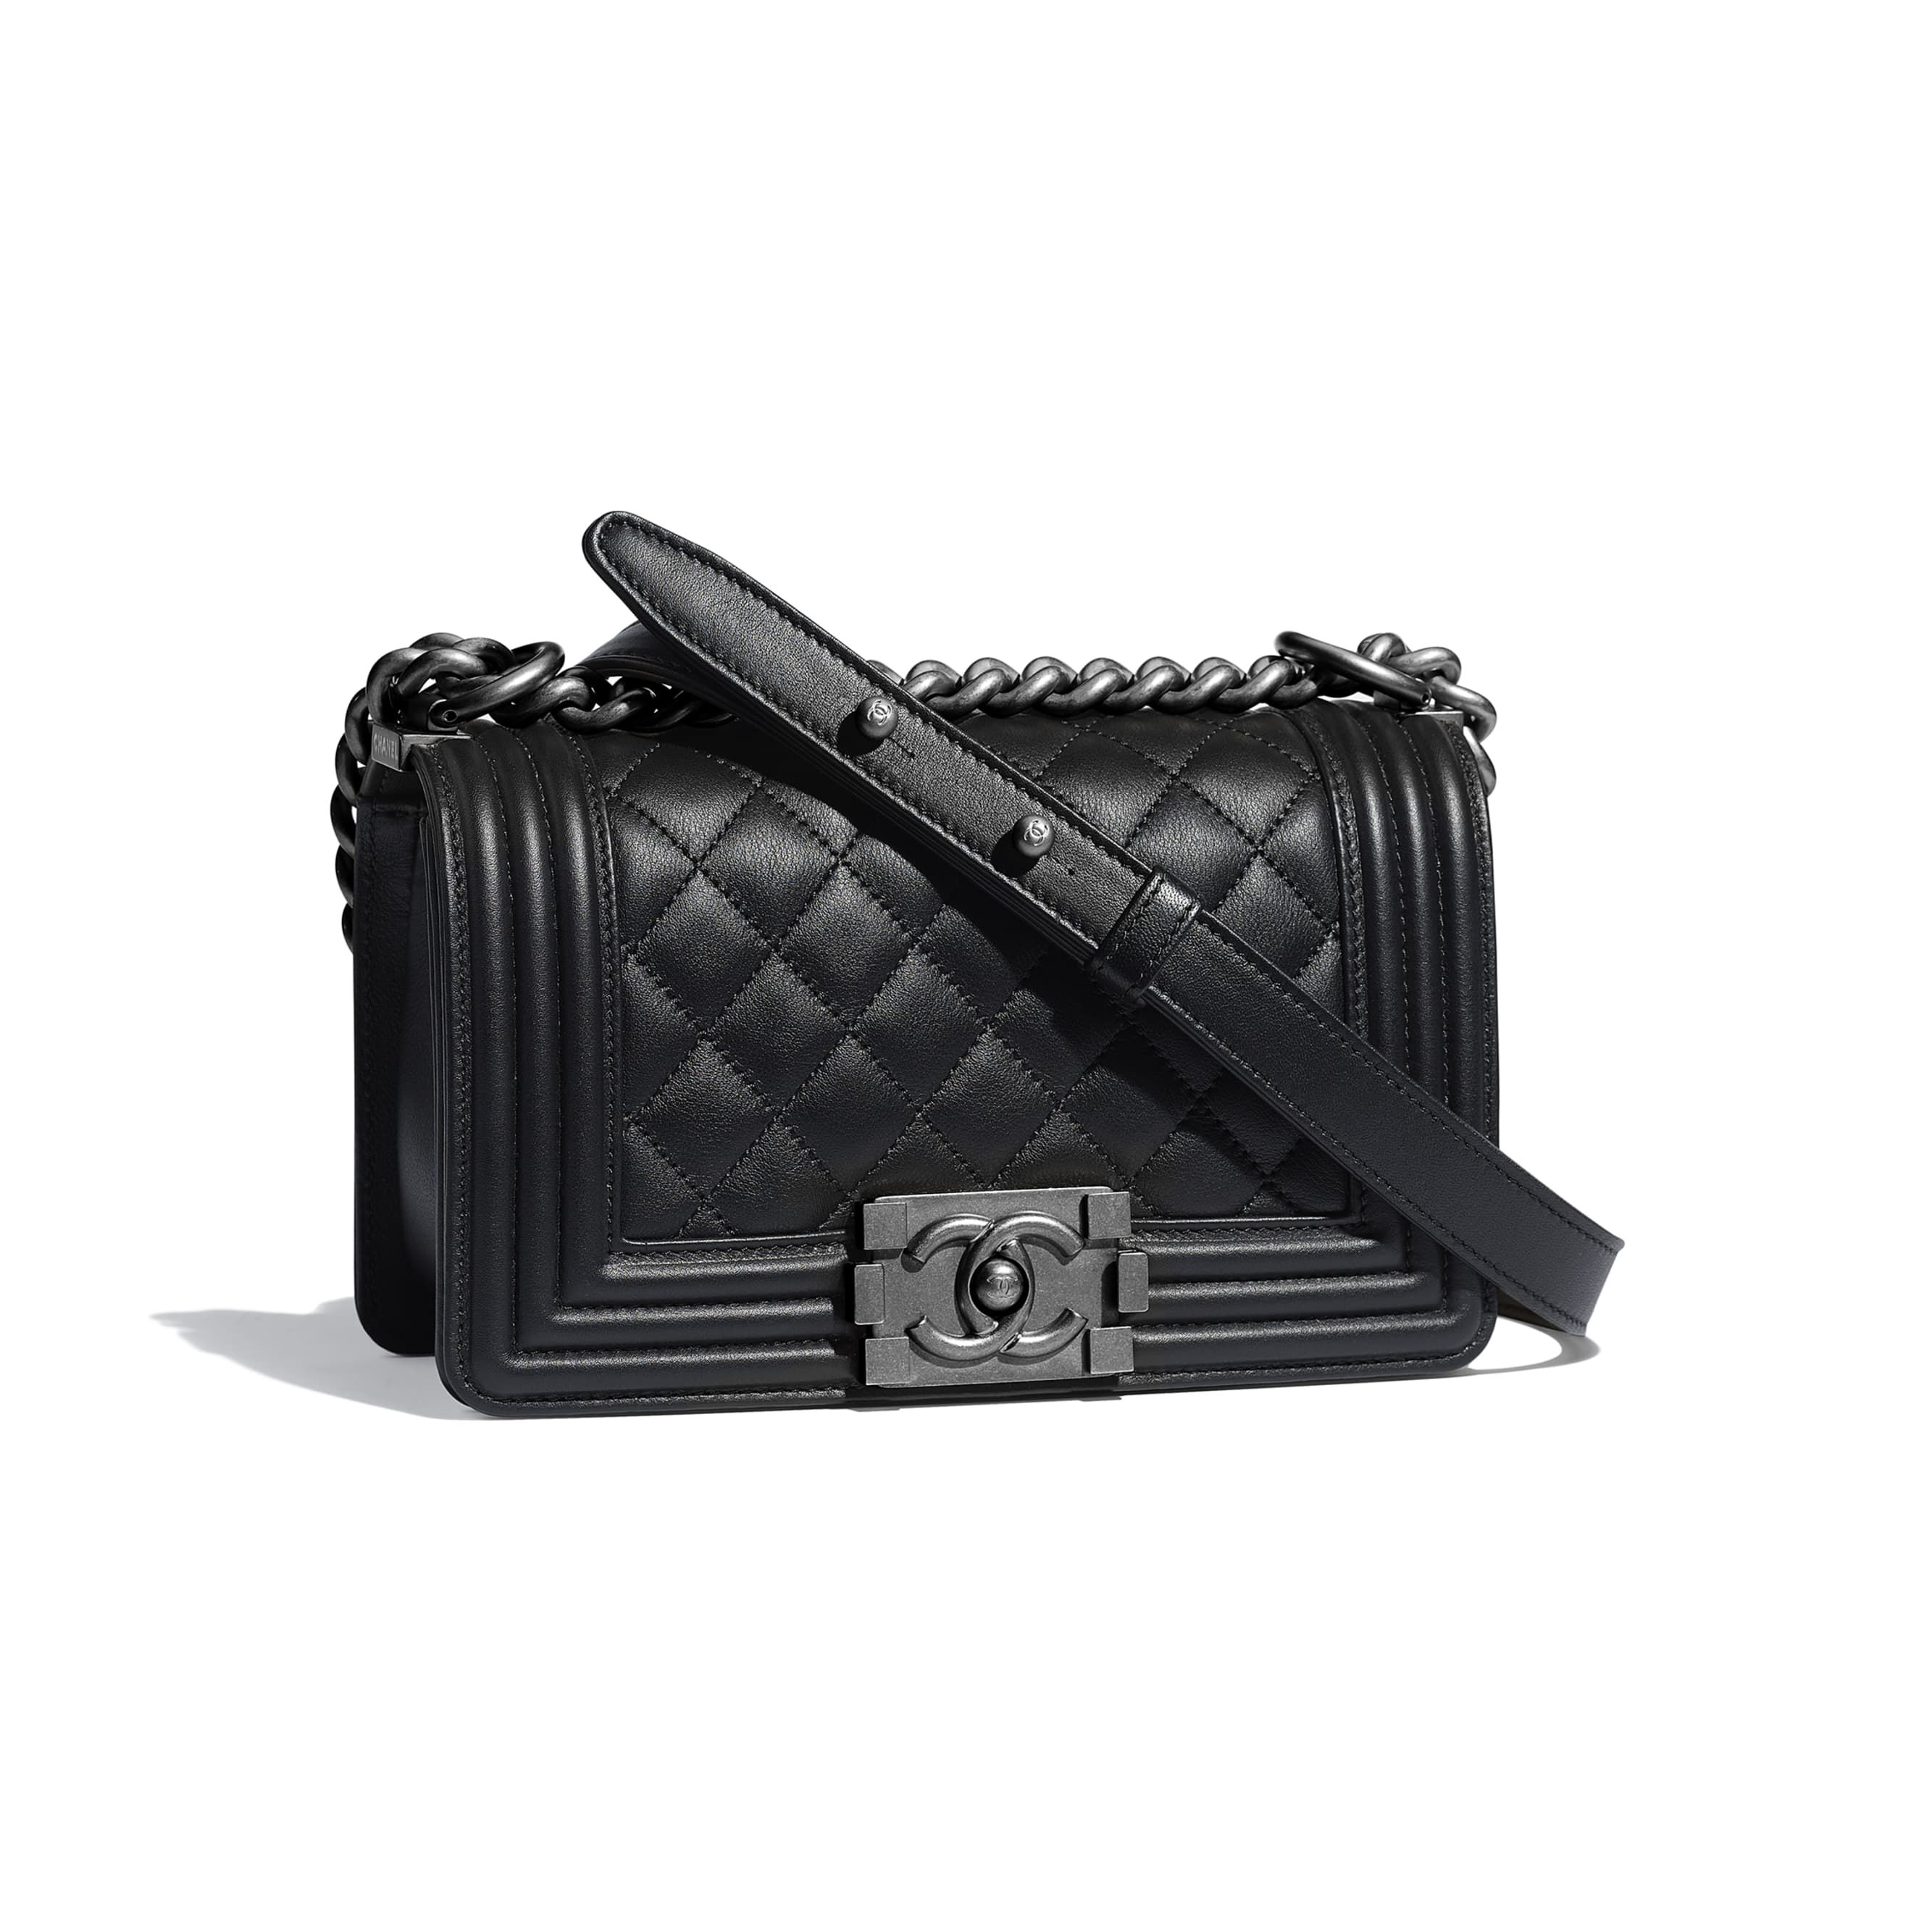 18644c1fdf62 Small BOY CHANEL Handbag - Black - Calfskin & Ruthenium-Finish Metal -  Default view - see standard sized version